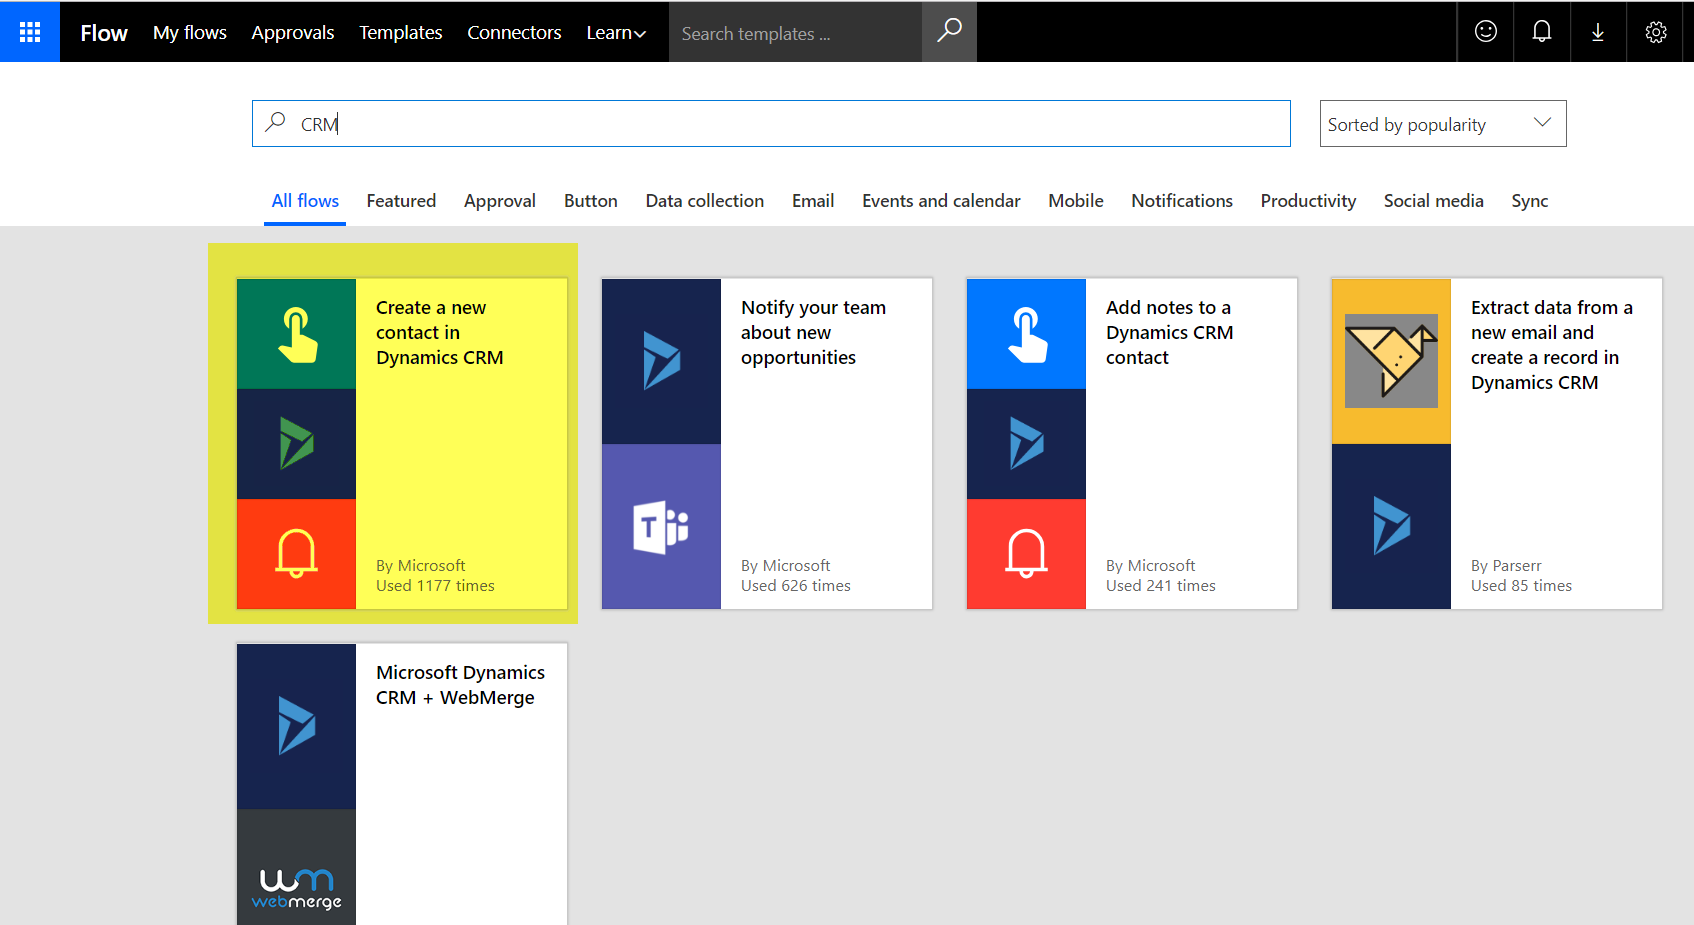 new contact in Dynamics CRM